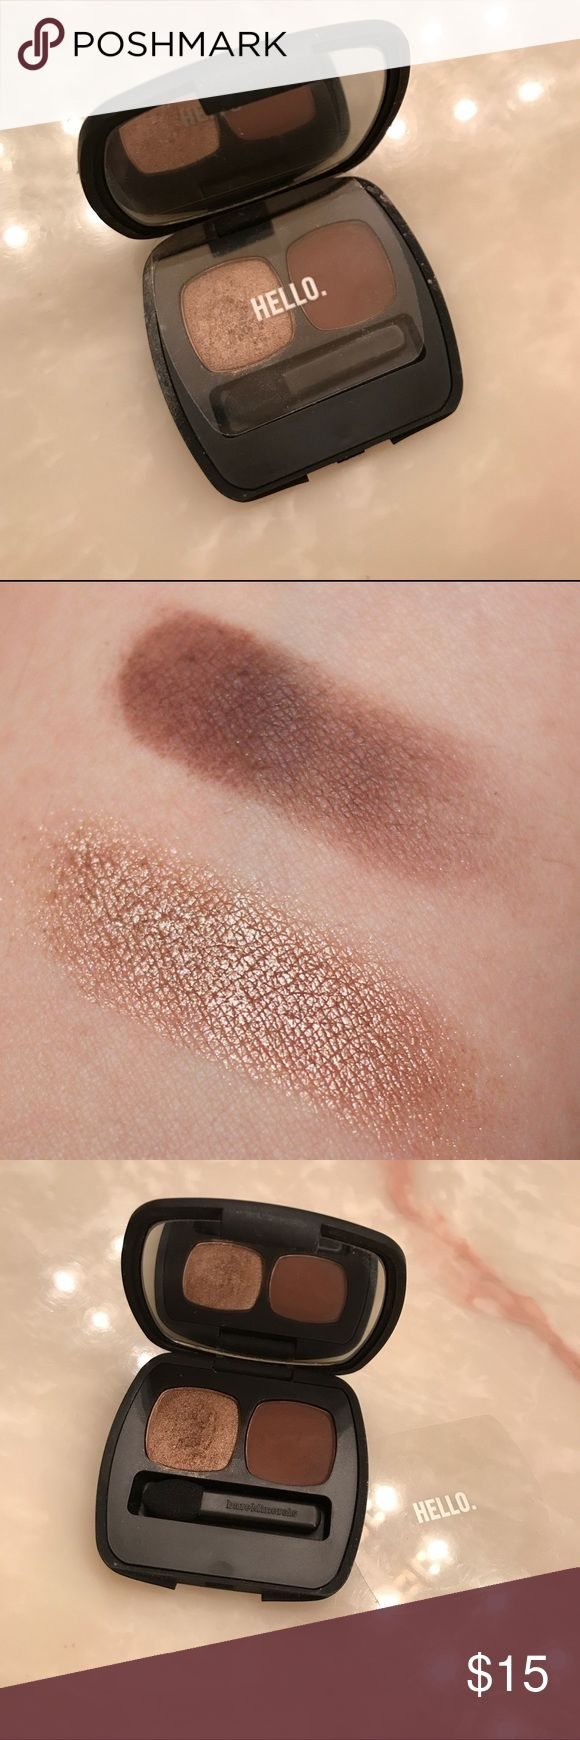 """eyeshadow duo One taupe bronze shimmer and matte to define your crease! Barely touched, maybe used twice as seen on photos. Perfect for travel or in makeup bag. """"The epiphany"""" duo shadow by bare minerals. LISTED AS NARS FOR EXPOSURE NARS Makeup Eyeshadow"""